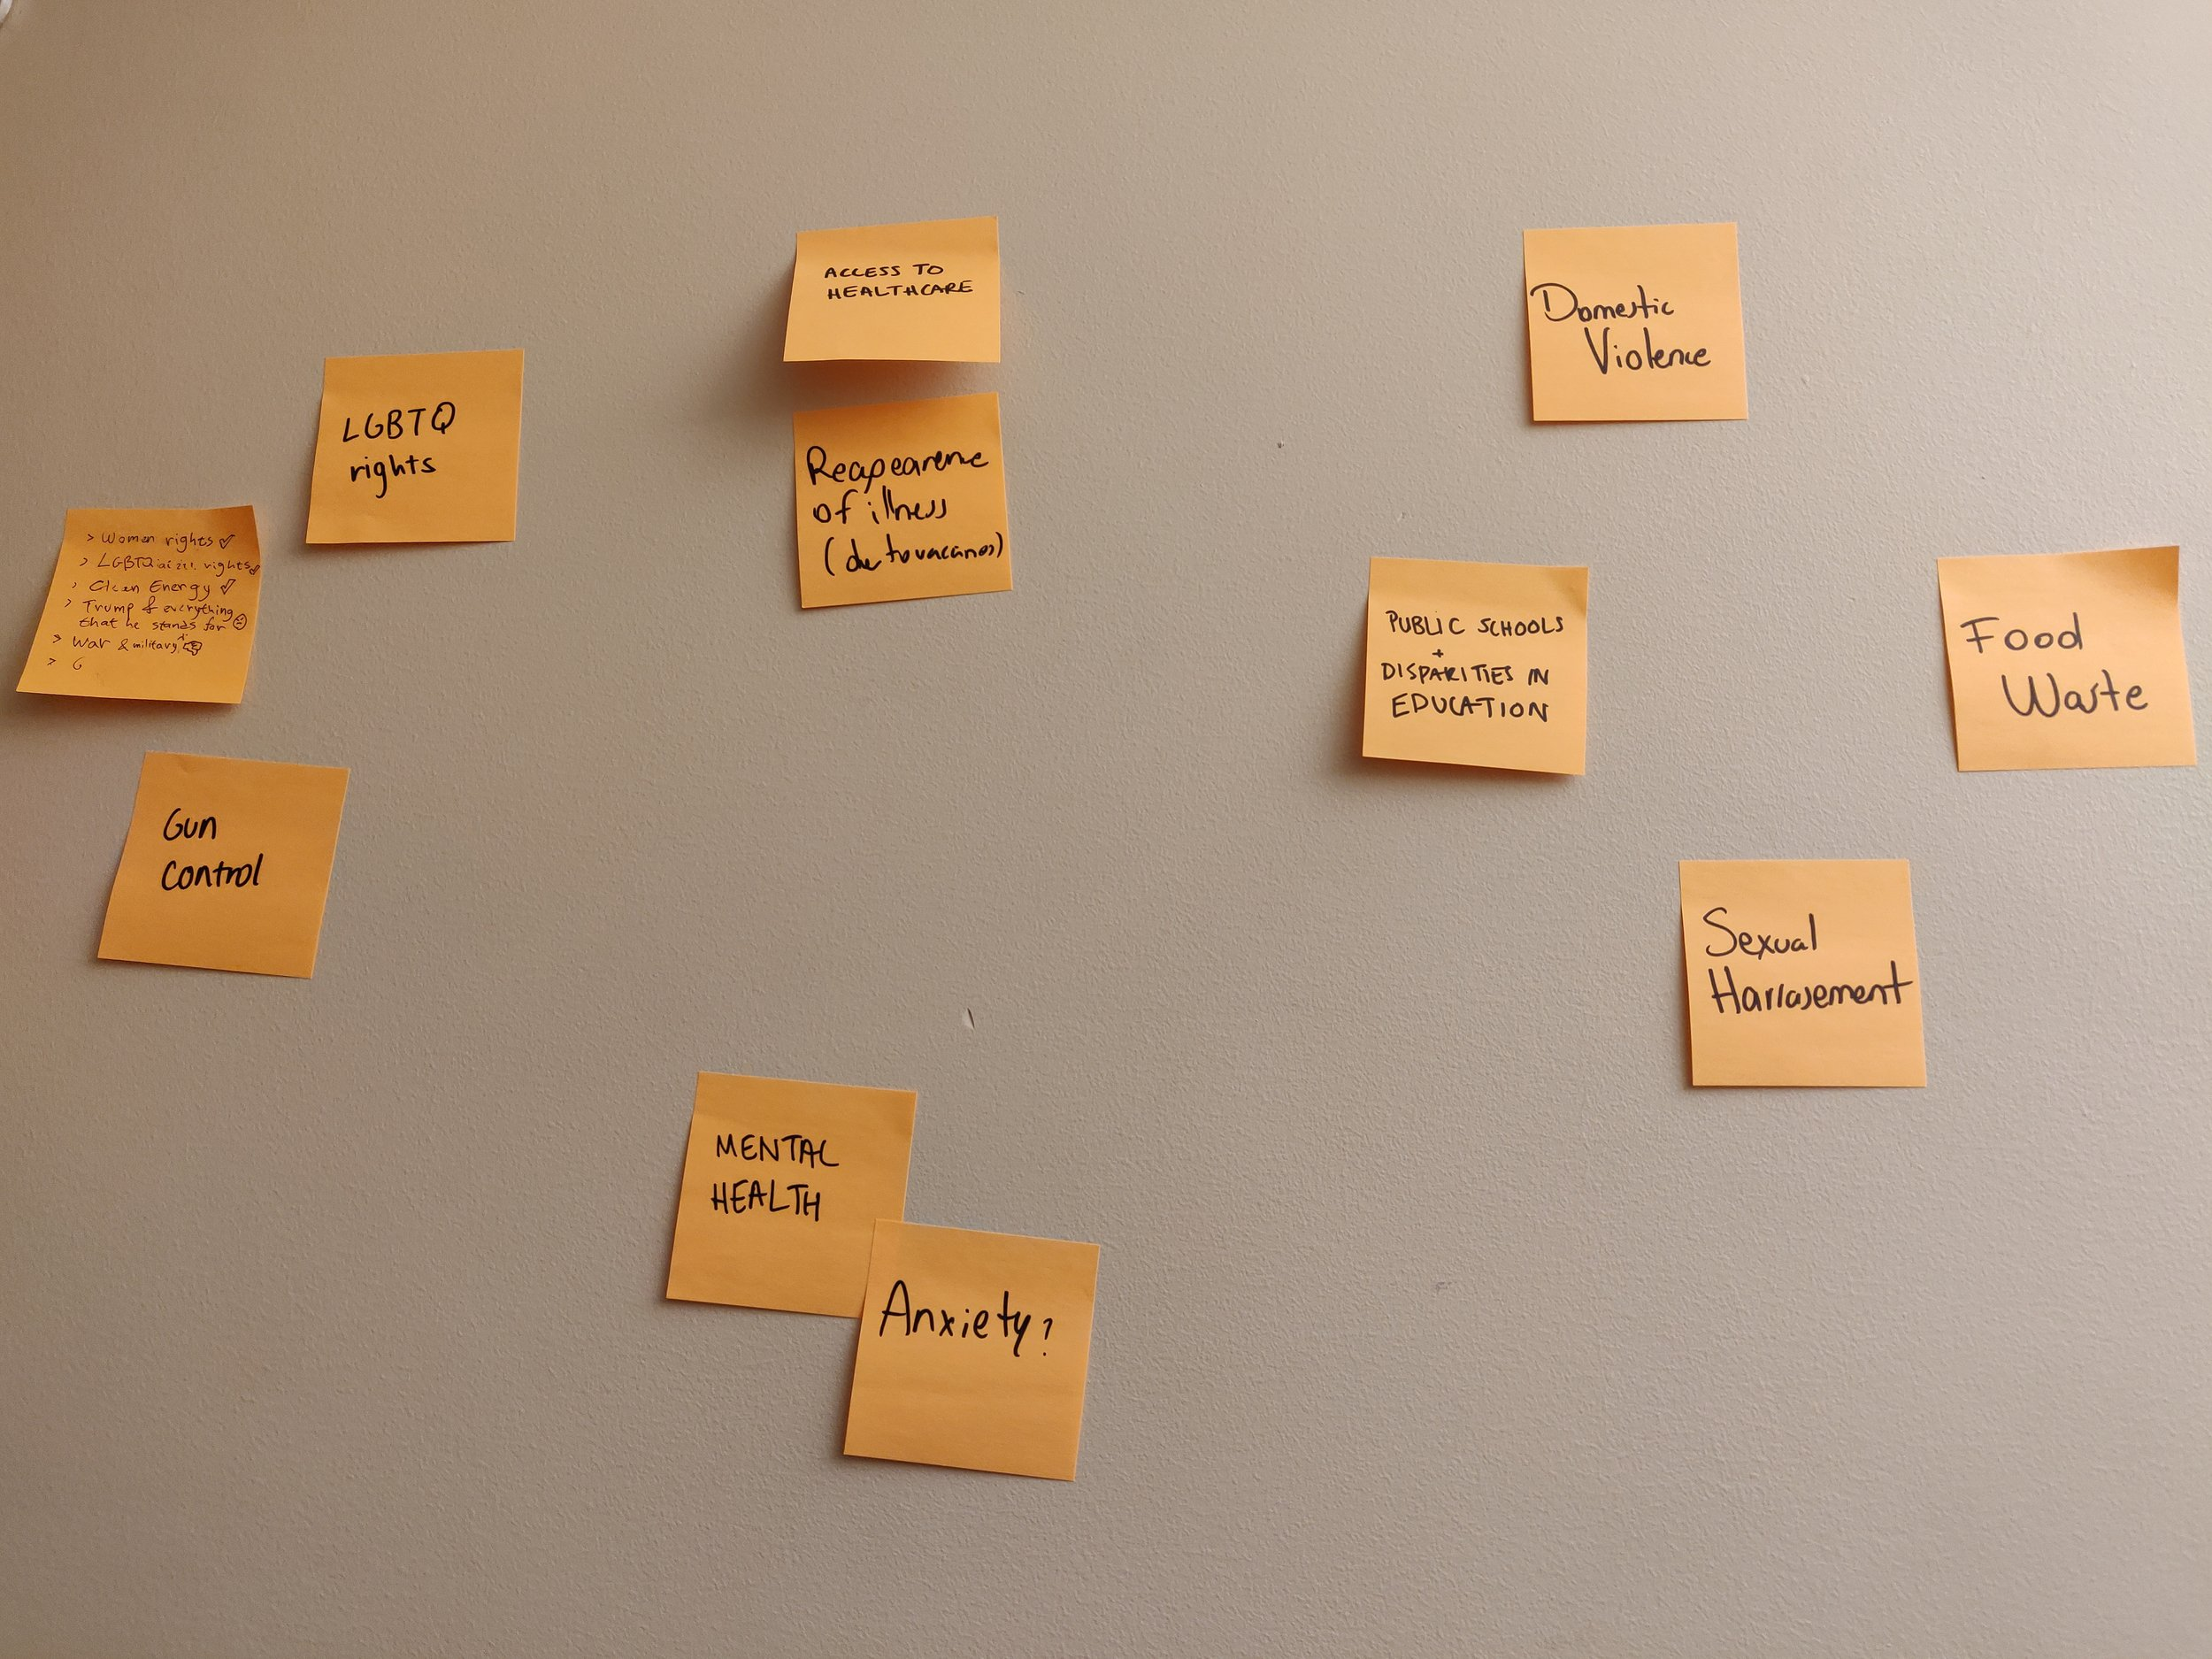 Brainstorming and ideation